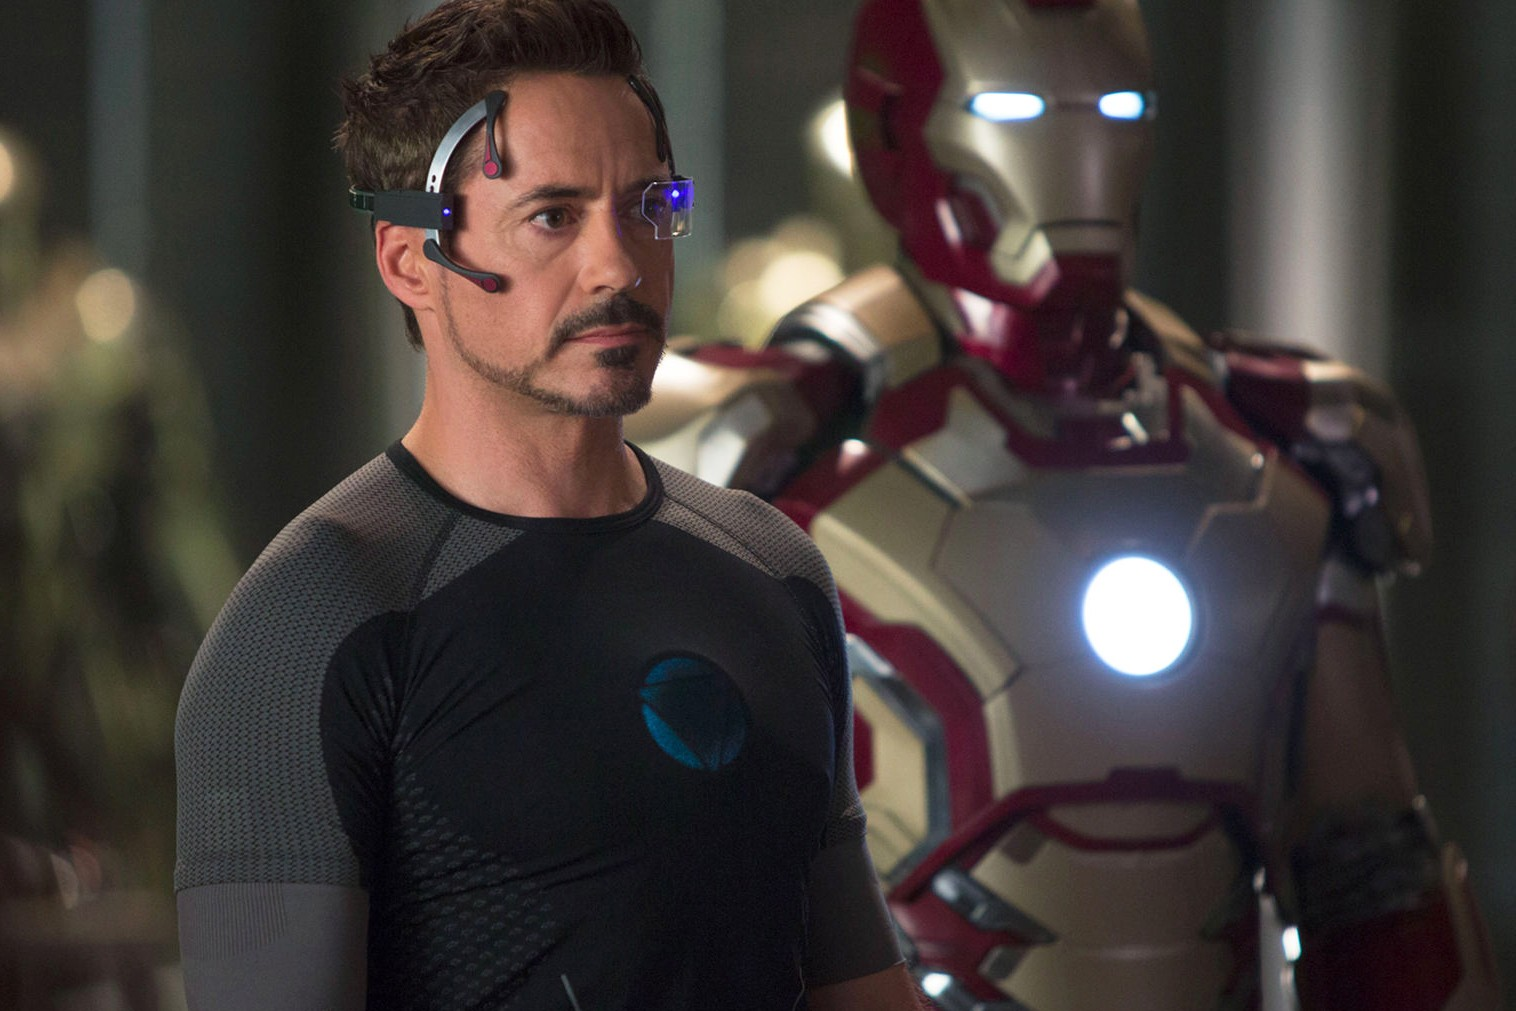 'Avengers: End Game' Could Be Robert Downey Jr.'s Final MCU Film